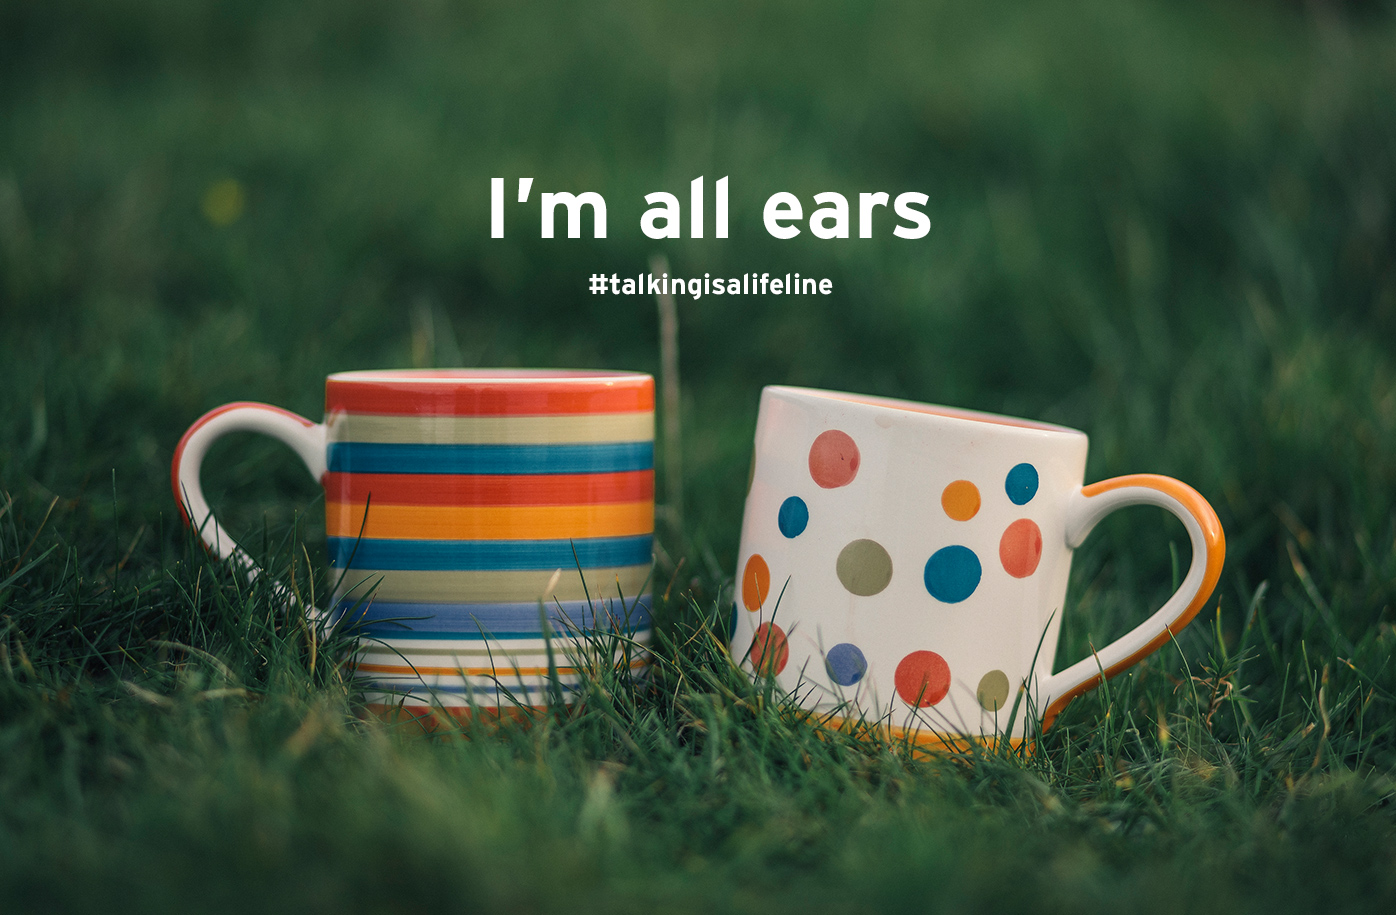 I'm all ears campaign idea